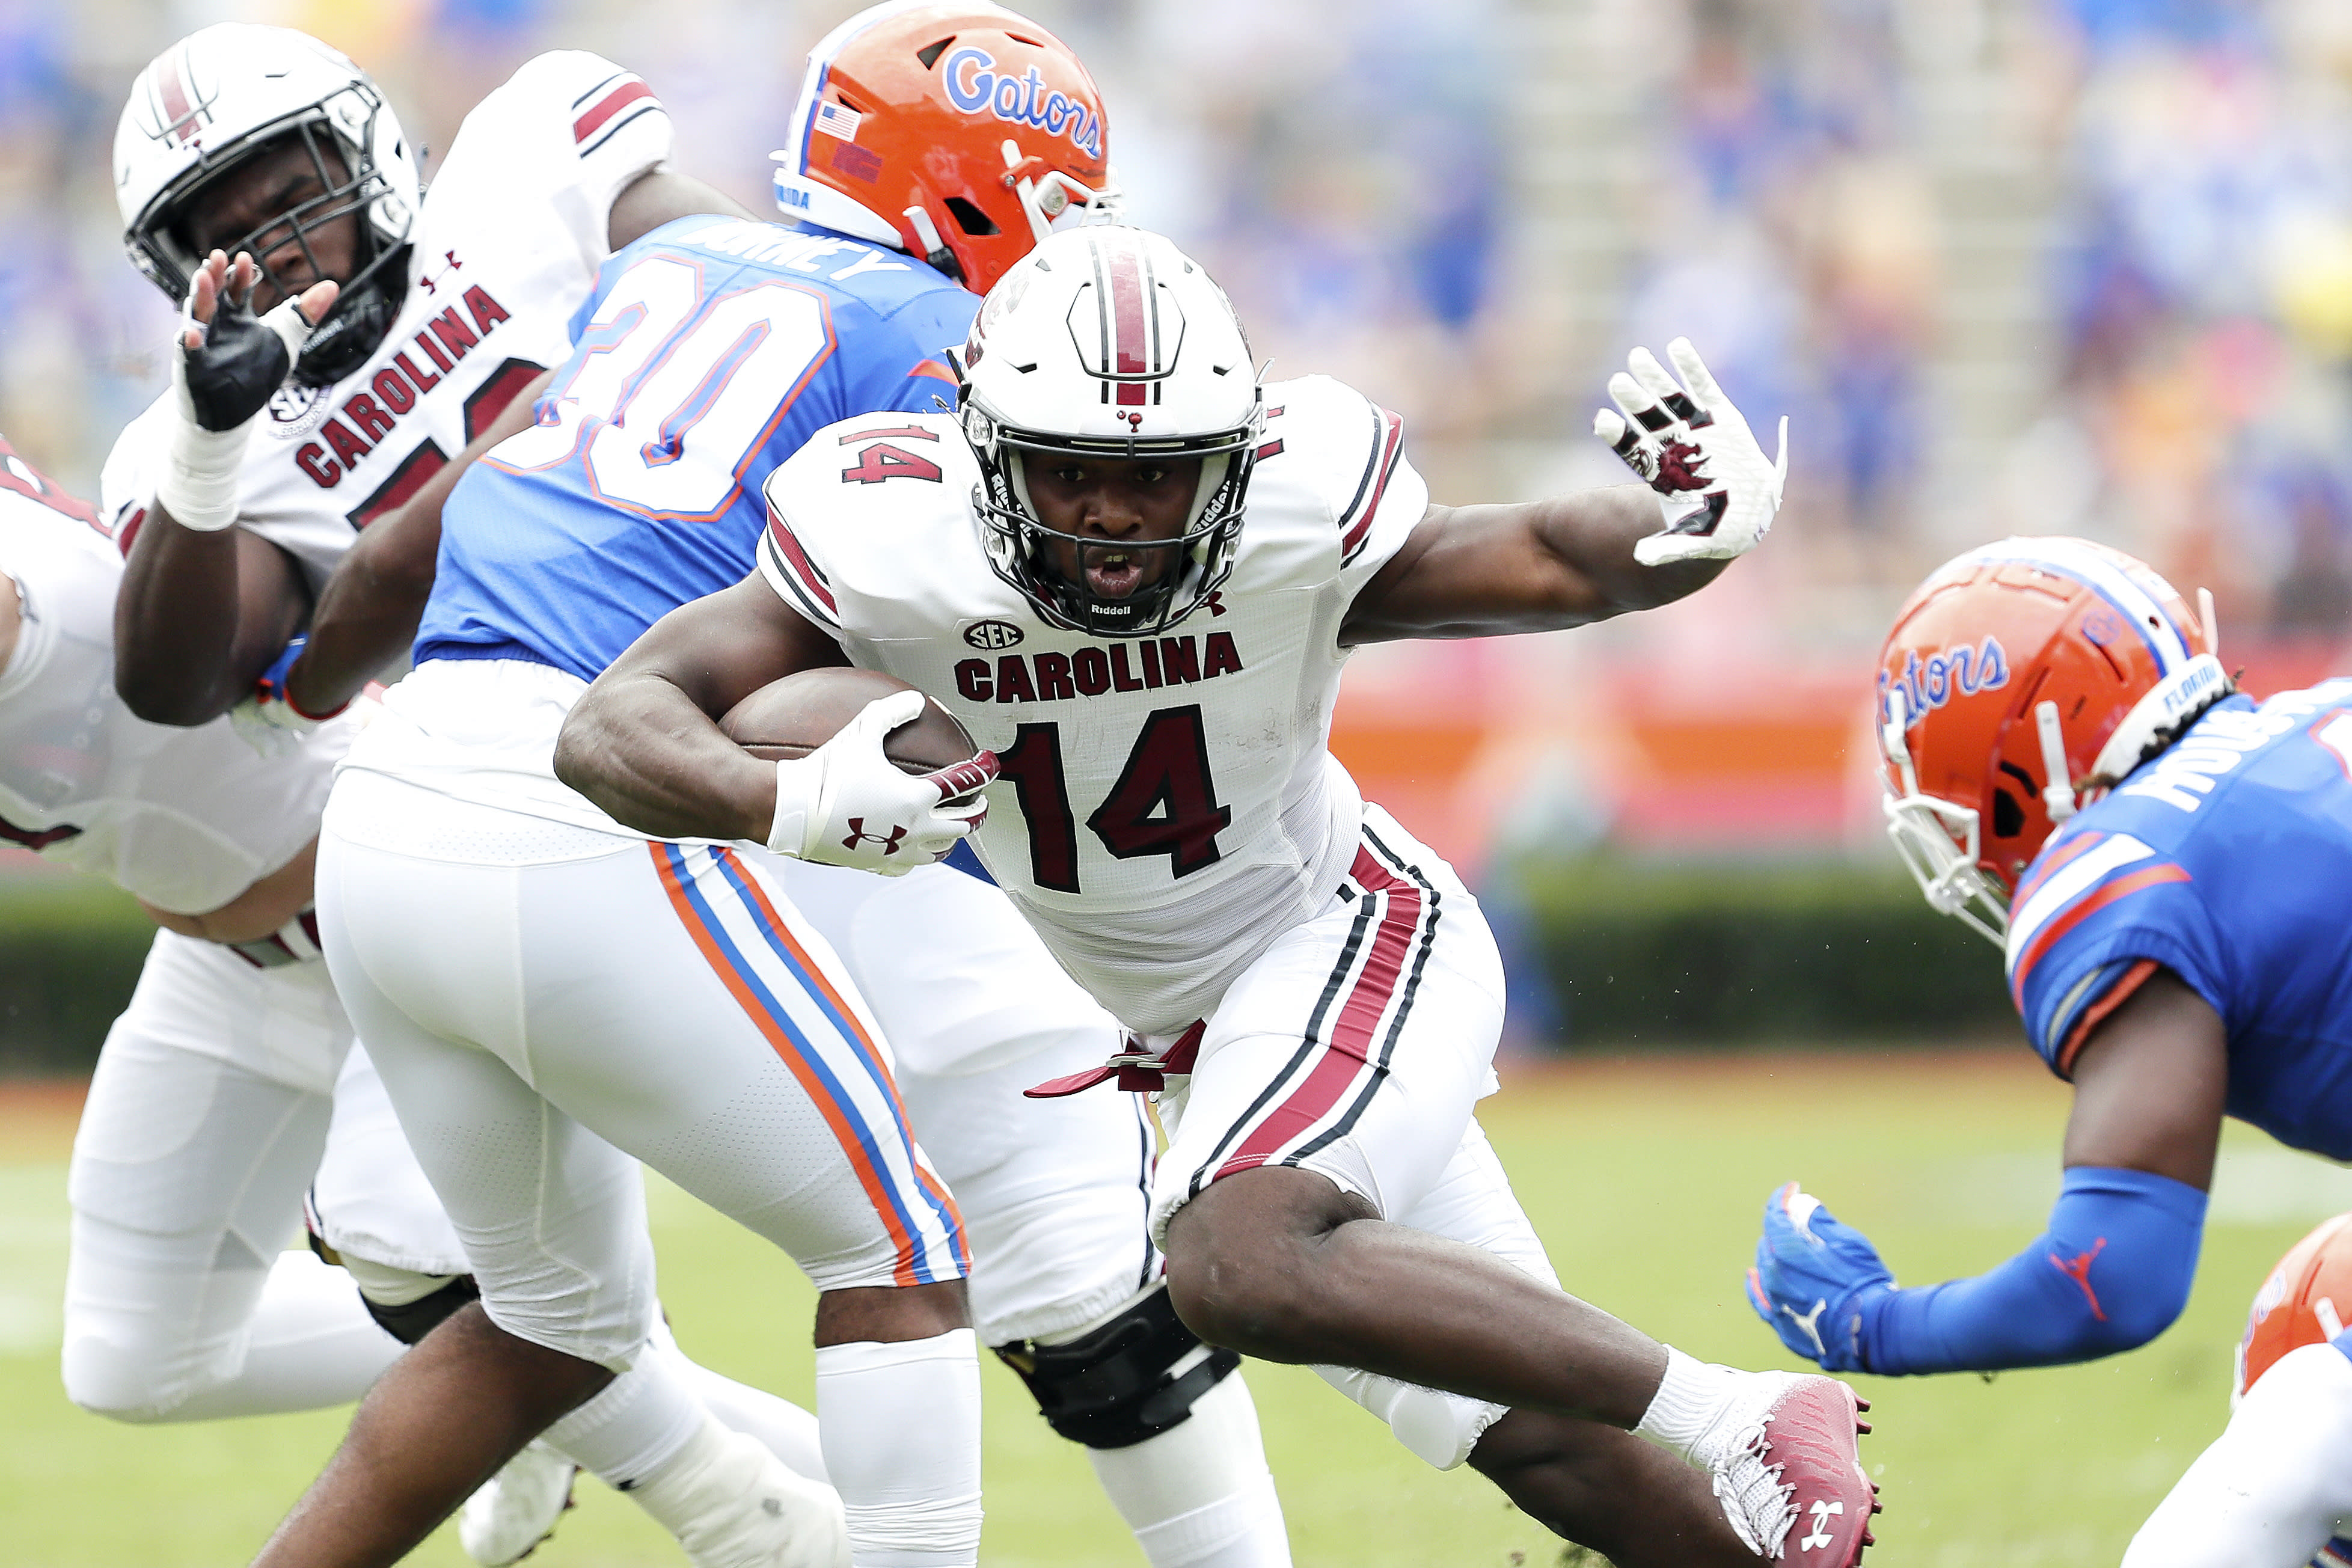 South Carolina receiver running back Deshaun Fenwick (14) runs the ball during against Florida during an NCAA college football game in Gainesville, Fla., Saturday, Oct. 3, 2020. (Brad McClenny/The Gainesville Sun via AP, Pool)